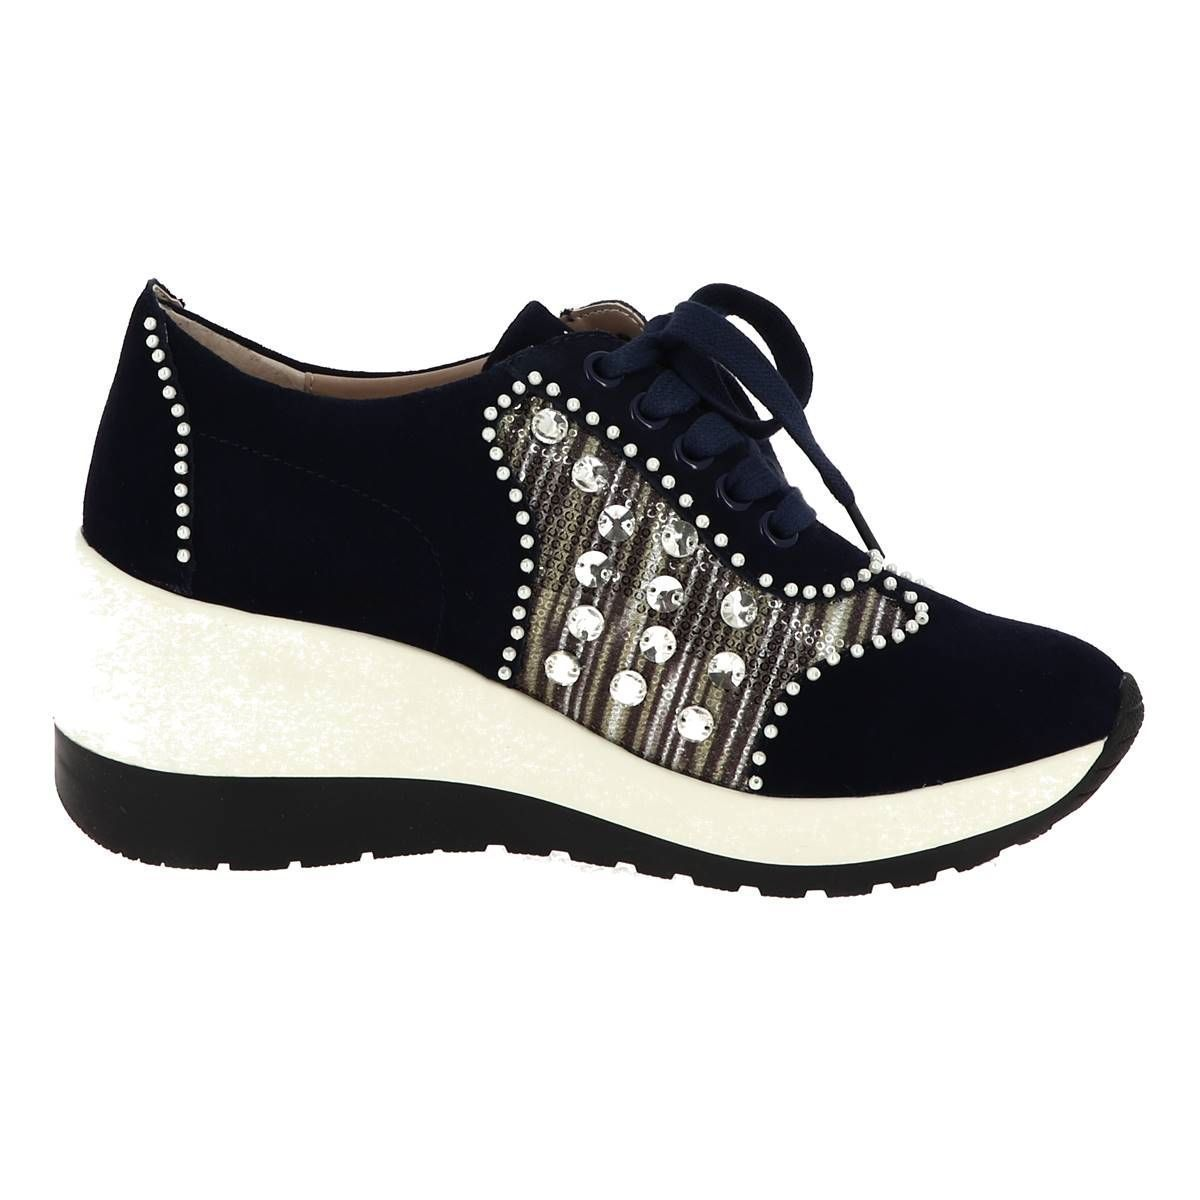 COCRALIEO 17 SHOES_WEDGE_PEARL:ESTADO/CUIR + AUTRES/SYNTHETIQUE/CAOUTCHOUC/Estado